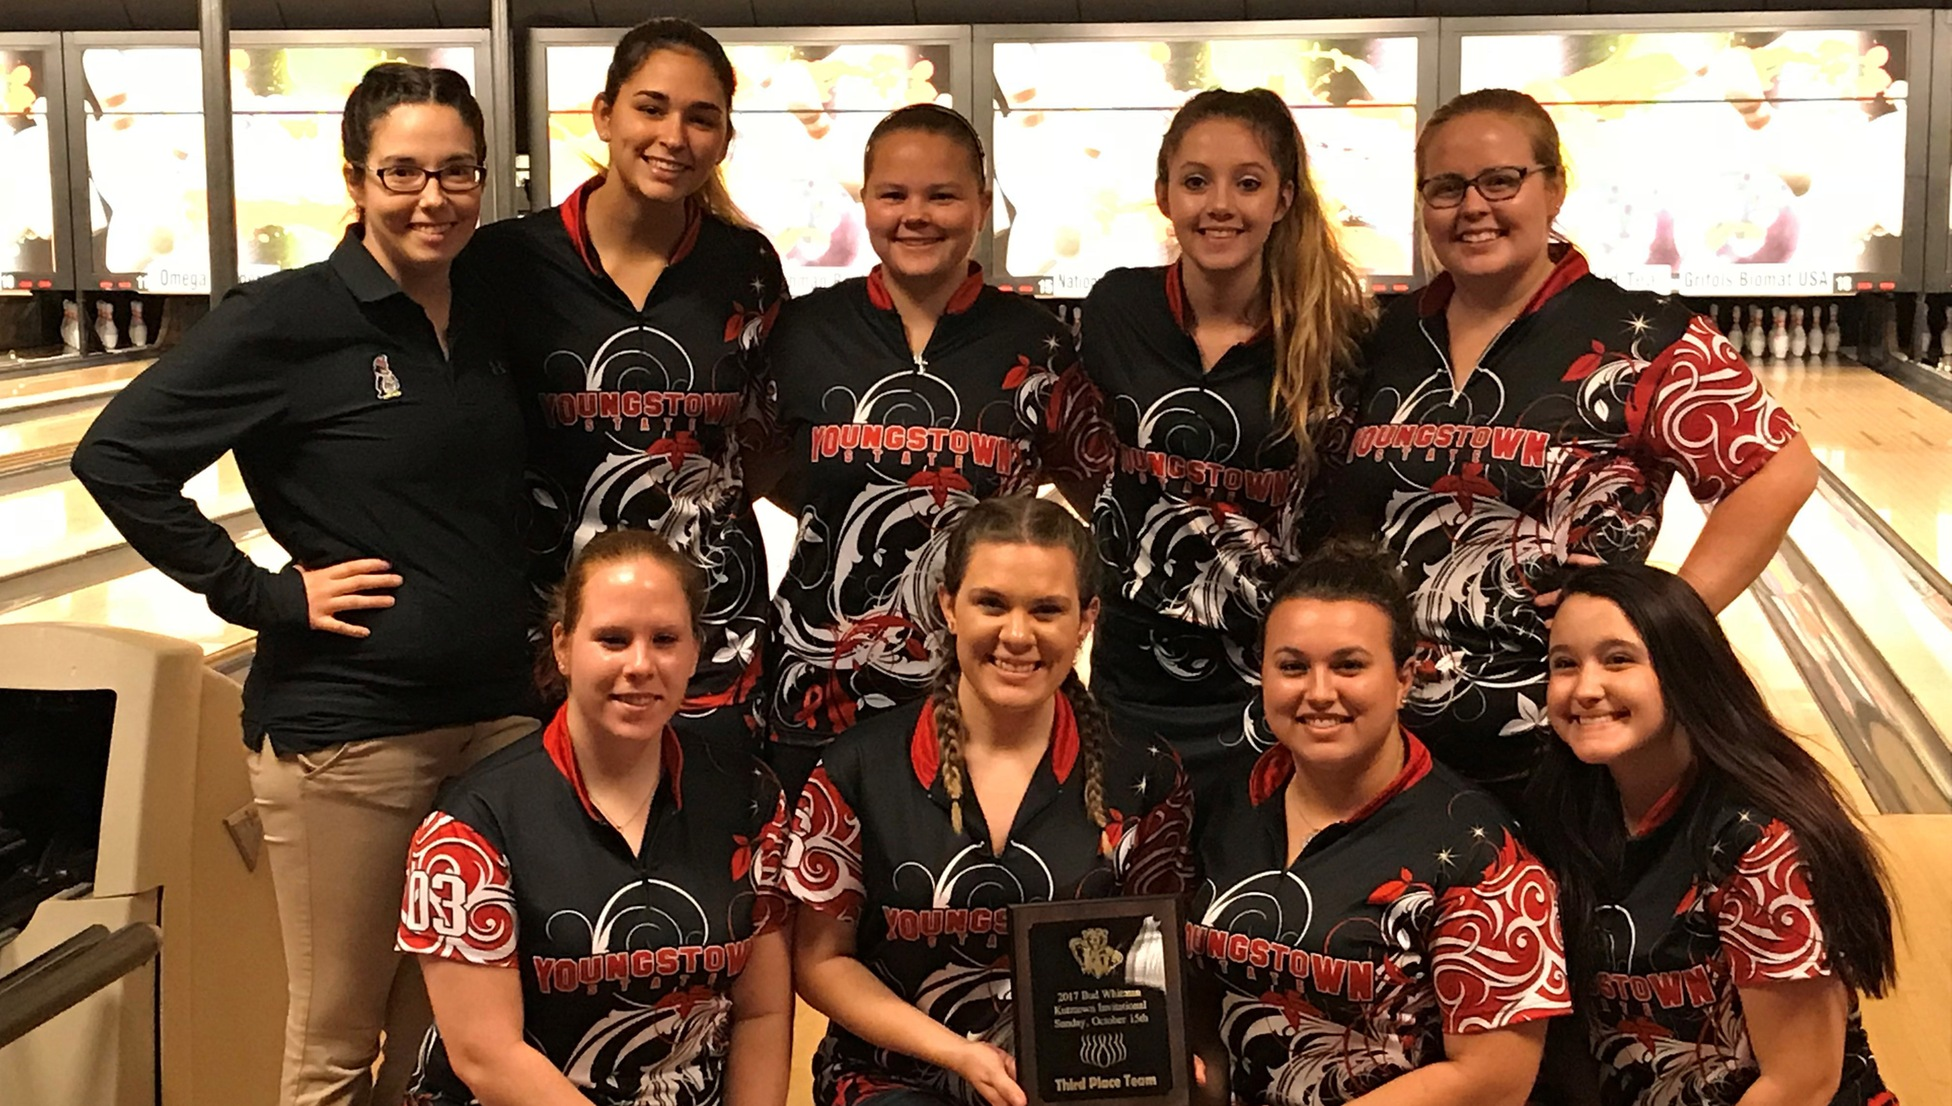 The YSU bowling team earned a third-place finish in traditional play at the Bud Whitman Memorial